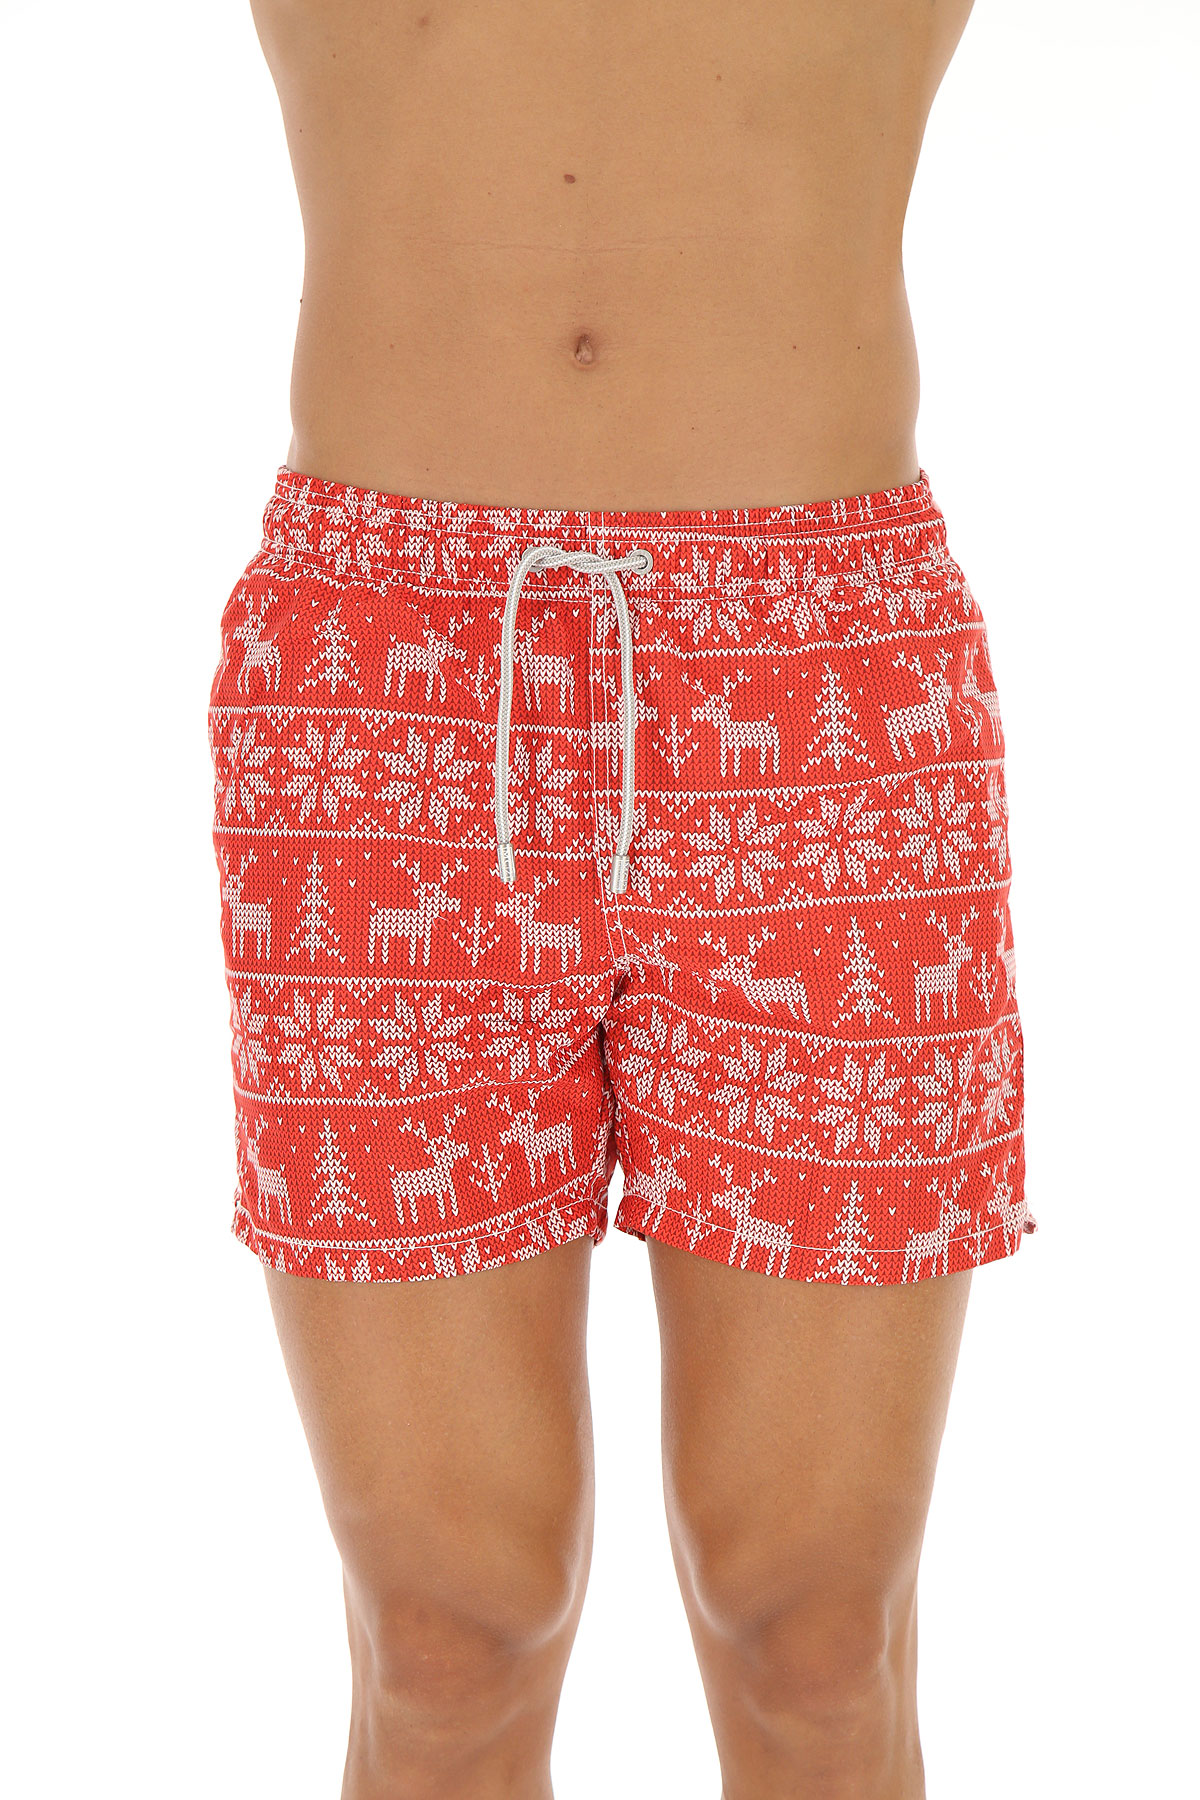 Image of Mc2 Saint Barth Swim Shorts Trunks for Men, Christmas Edition, Red, polyester, 2017, S M L XL